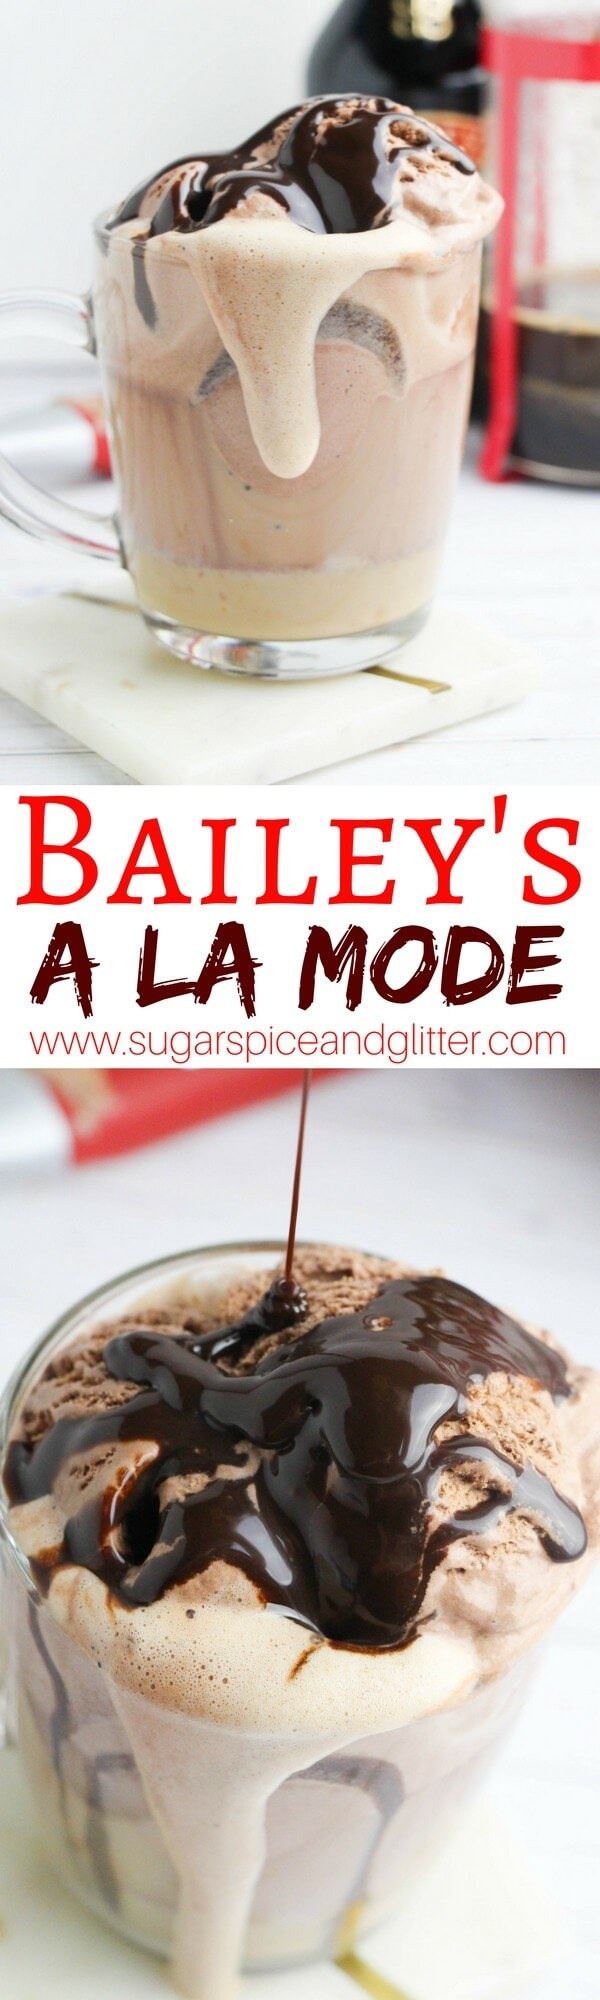 Bailey's Coffee a la Mode, for the perfect dessert coffee cocktail your guests will go crazy for!